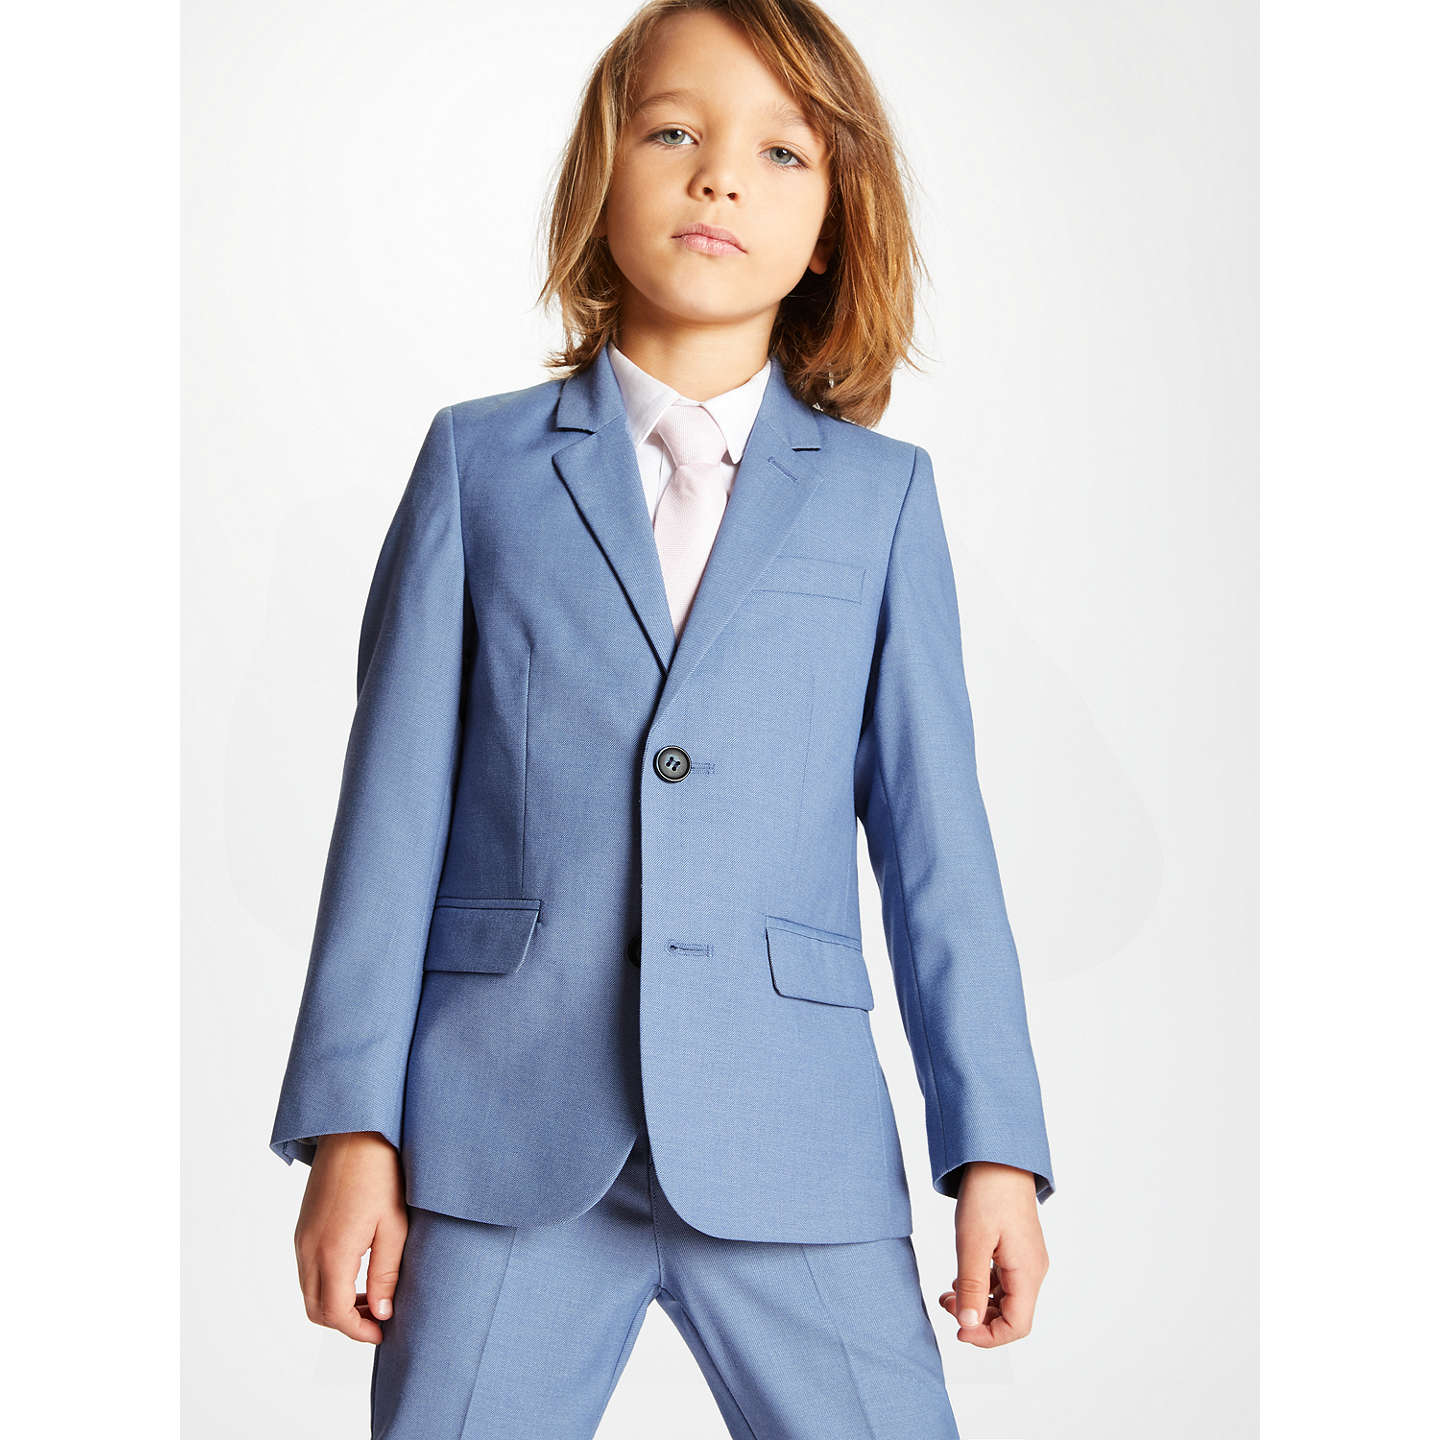 John Lewis Heirloom Collection Boys\' Suit Jacket, Mid Blue at John Lewis